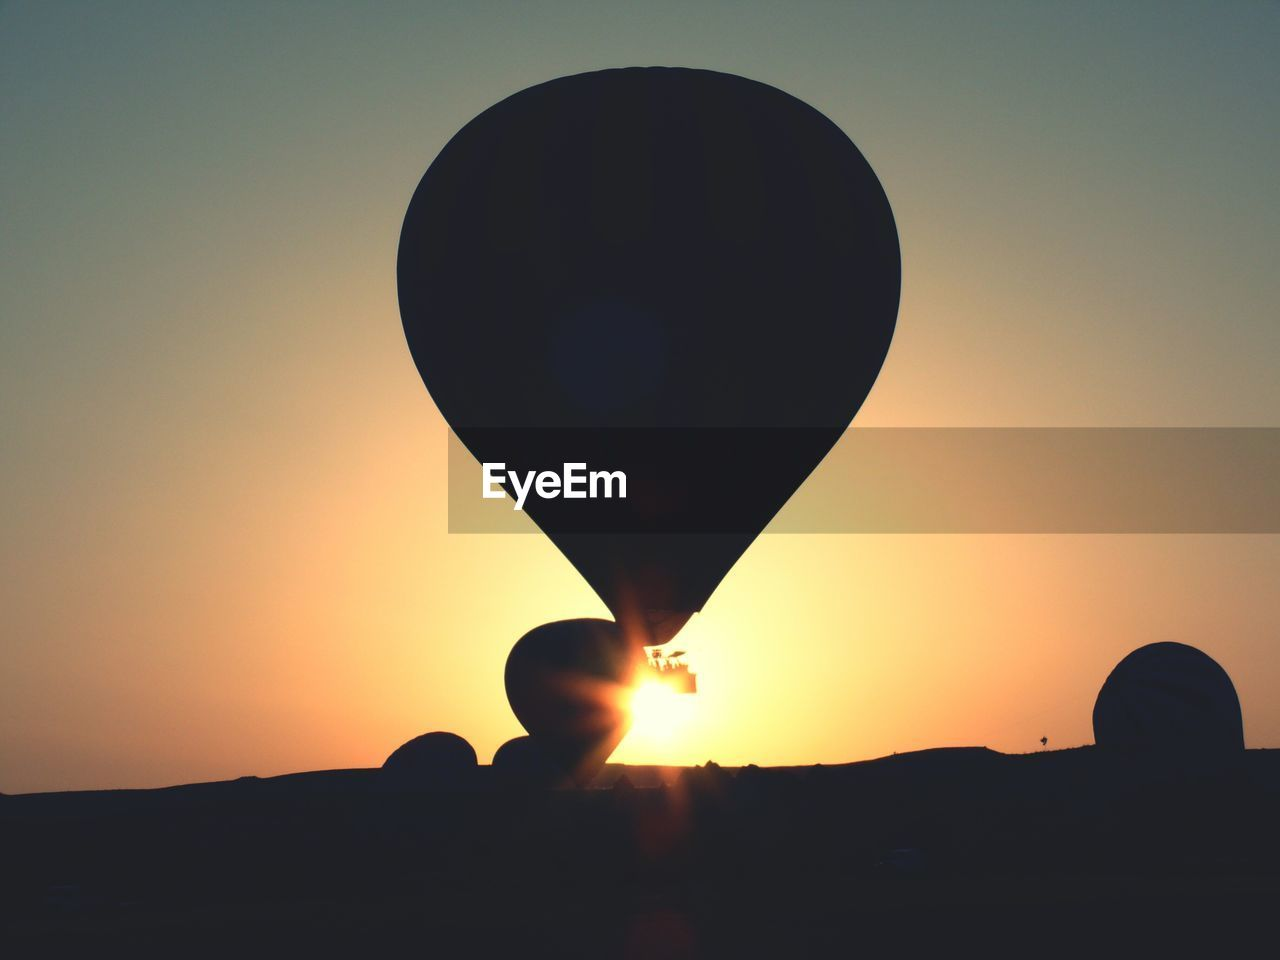 sunset, sky, orange color, sun, air vehicle, balloon, silhouette, hot air balloon, beauty in nature, nature, scenics - nature, flying, transportation, sunlight, mid-air, clear sky, outdoors, no people, adventure, lens flare, ballooning festival